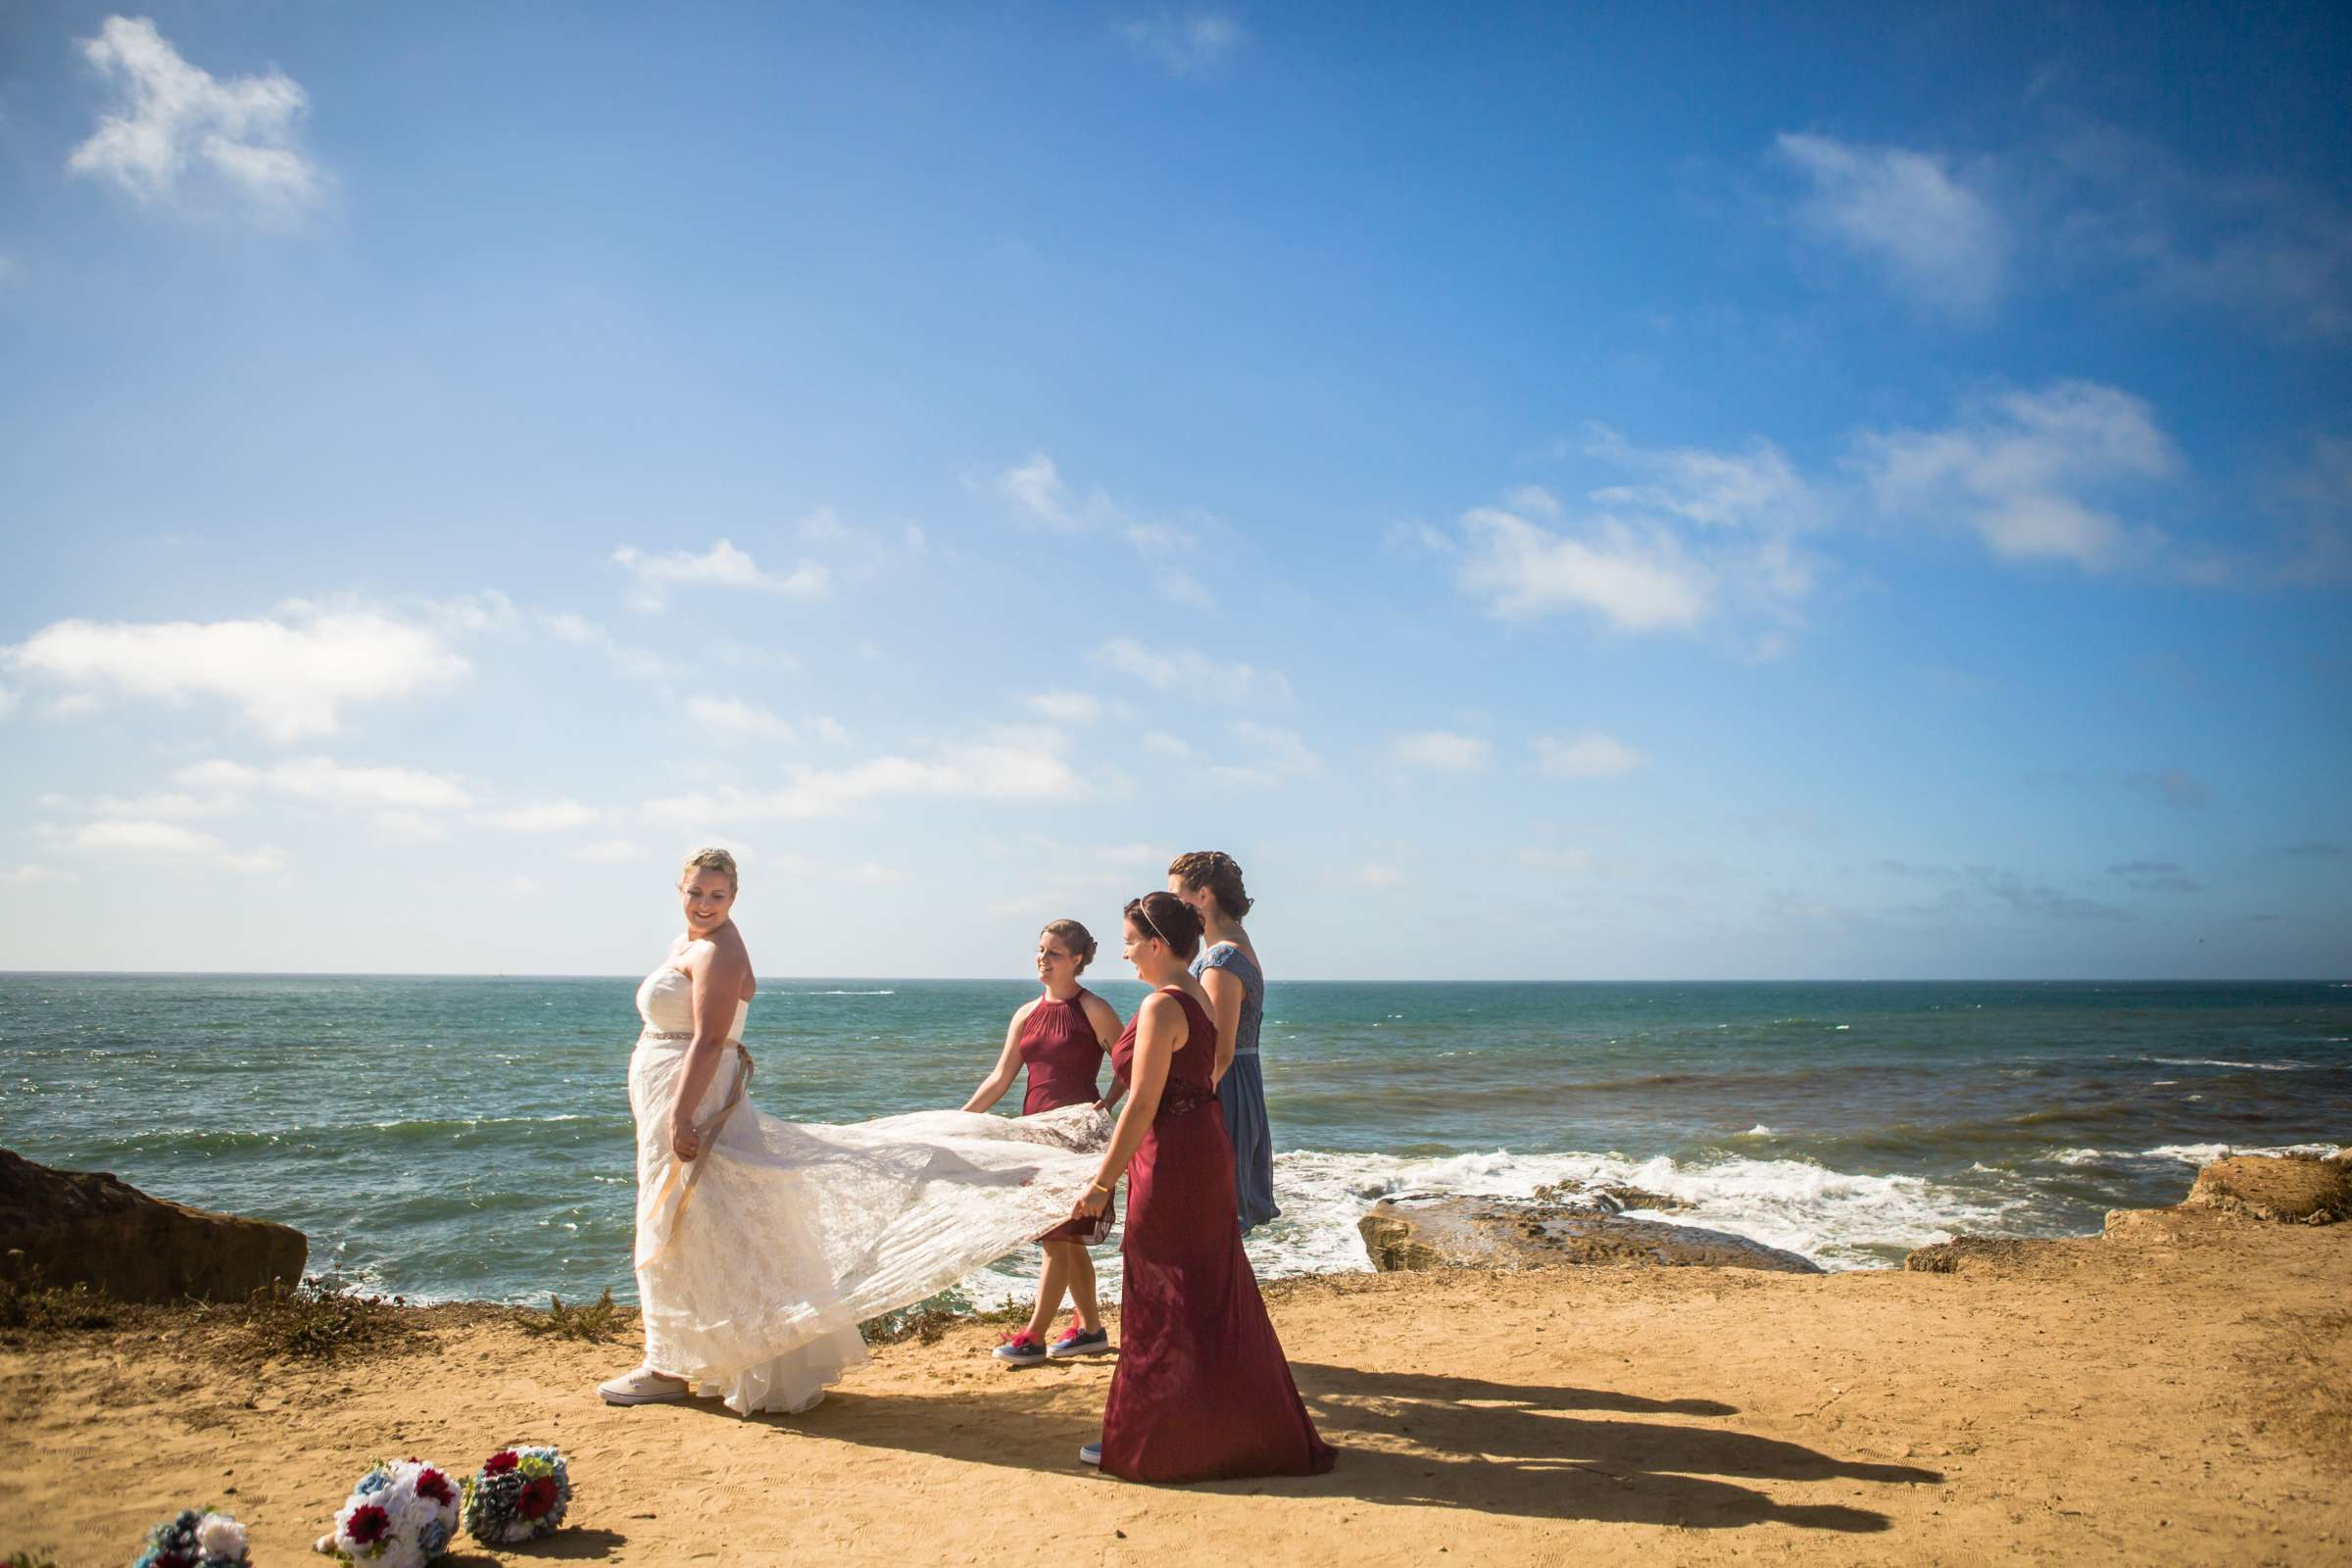 The Inn at Sunset Cliffs Wedding, Melinda and Benjamin Wedding Photo #74 by True Photography